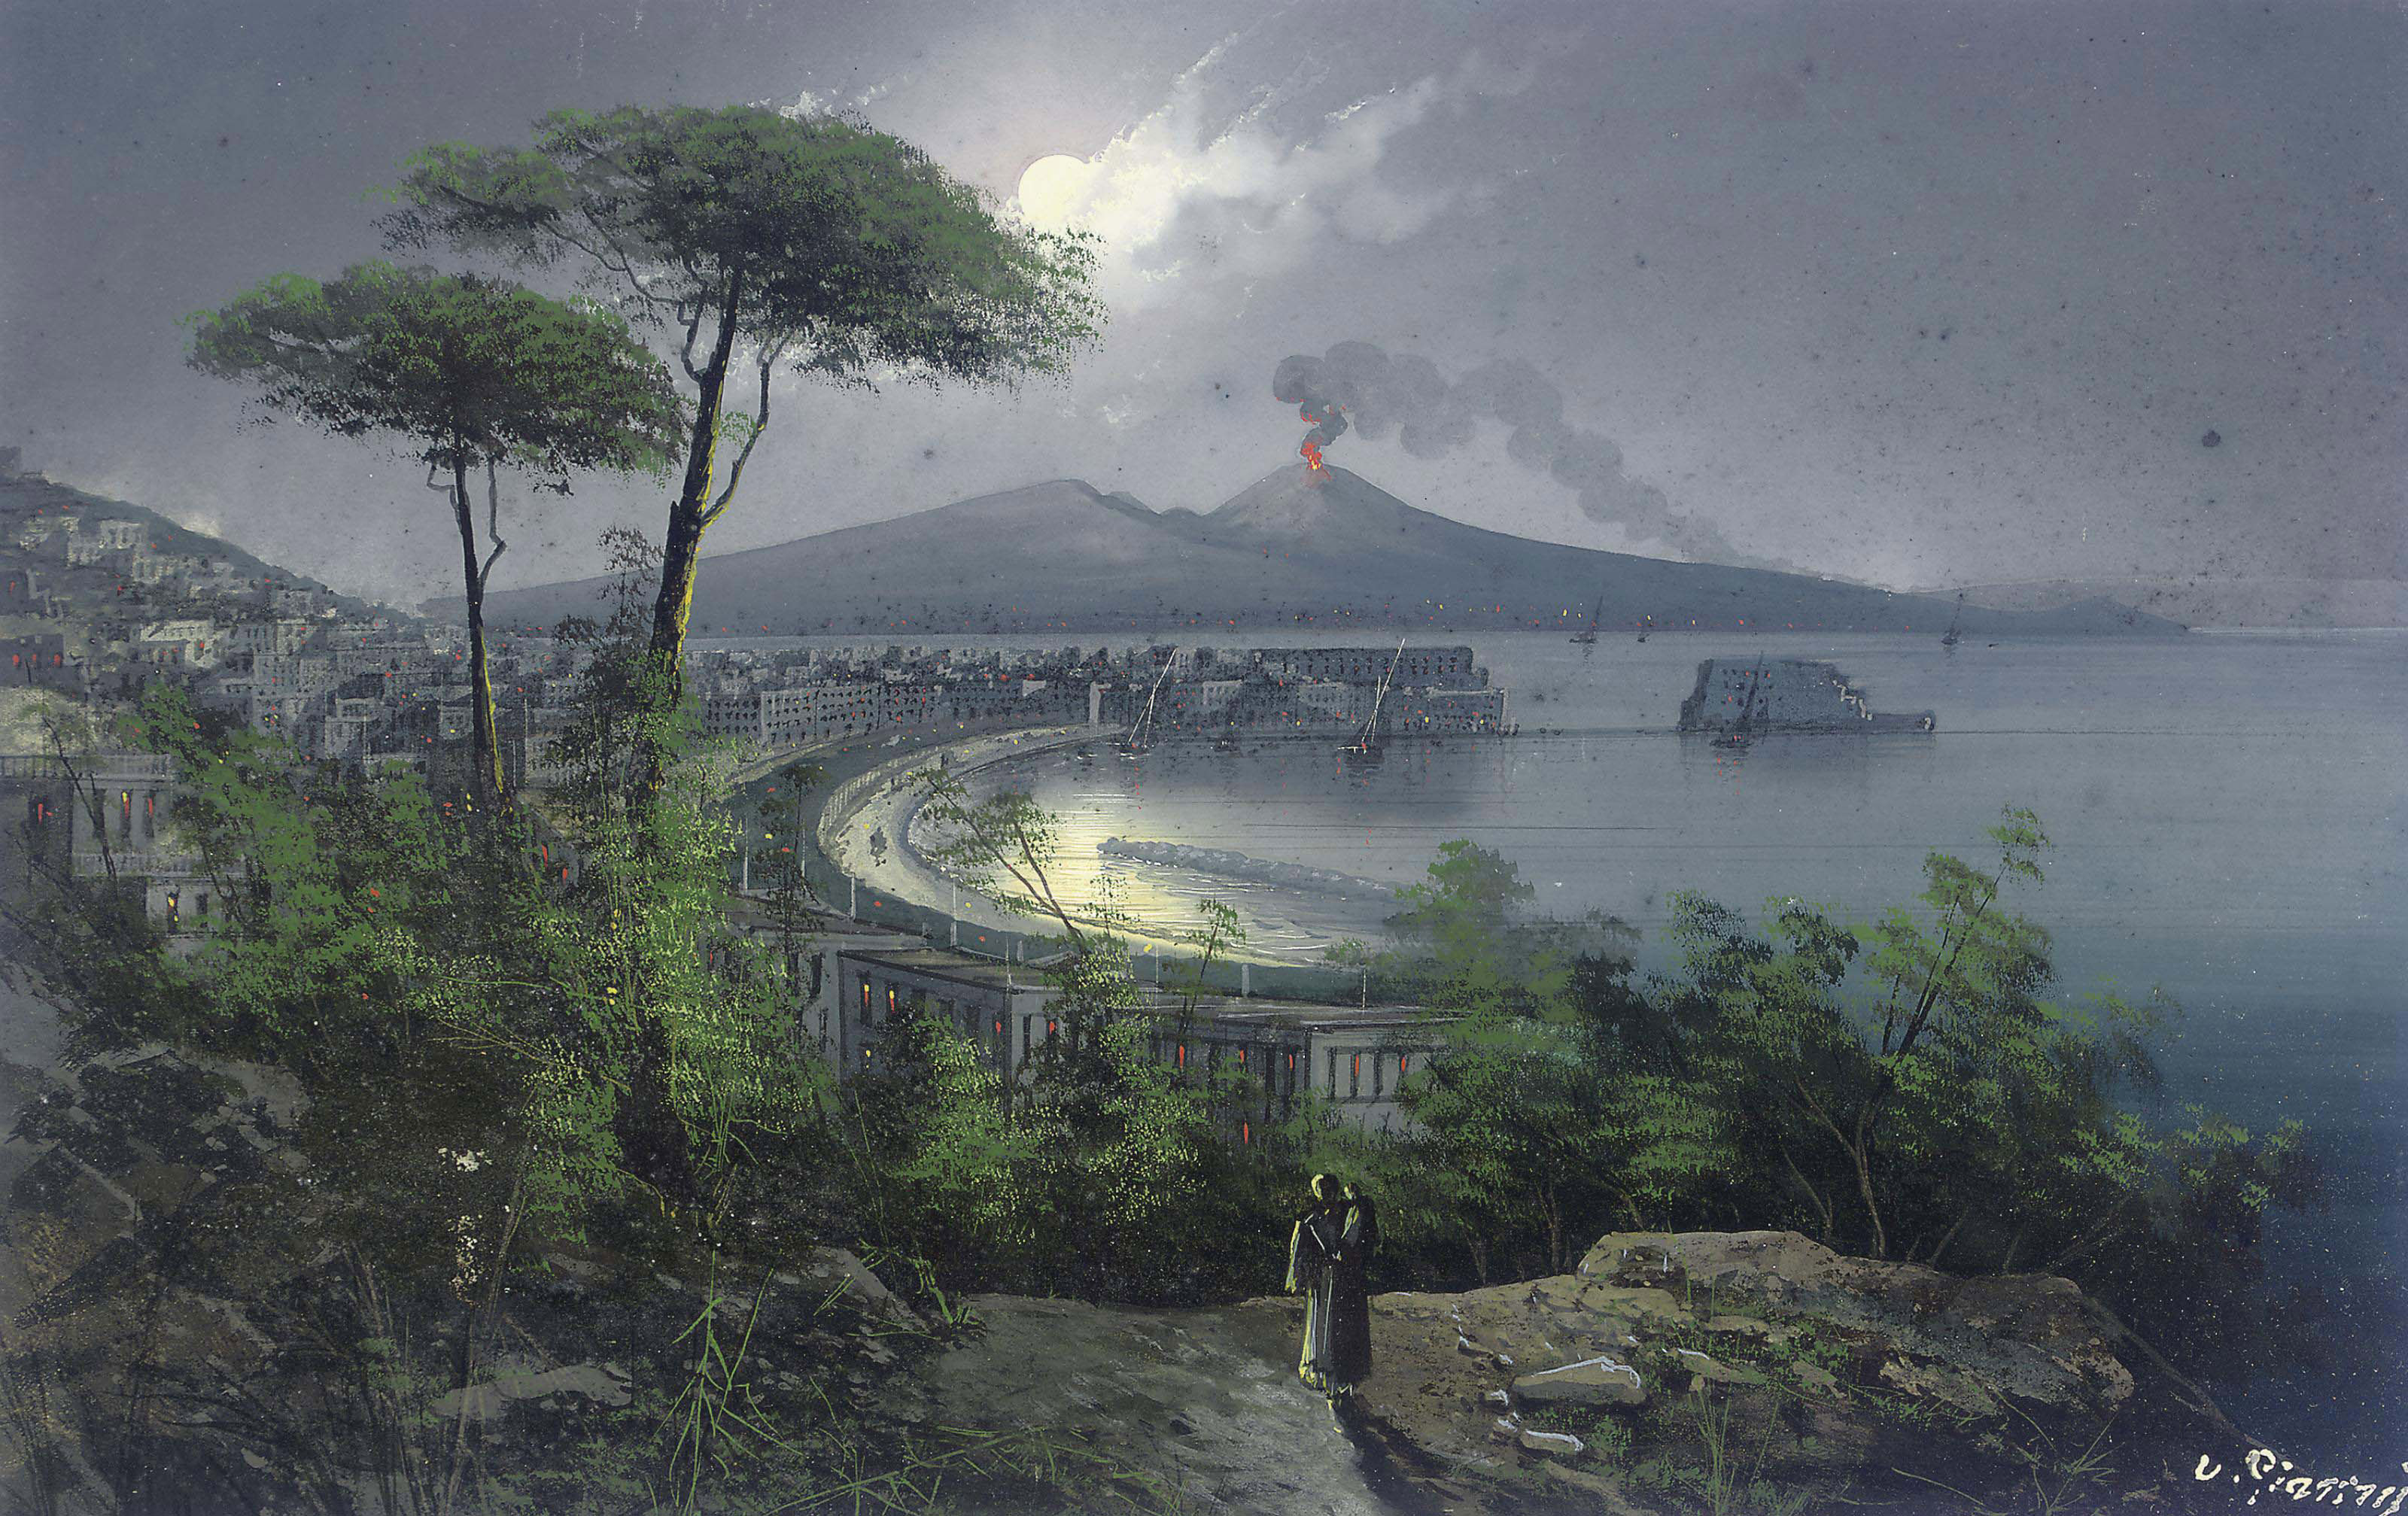 The bay of Naples at night, with Vesuvius erupting beyond (illustrated); Bay of Naples; and Fisherfolk on the shore, Sorrento